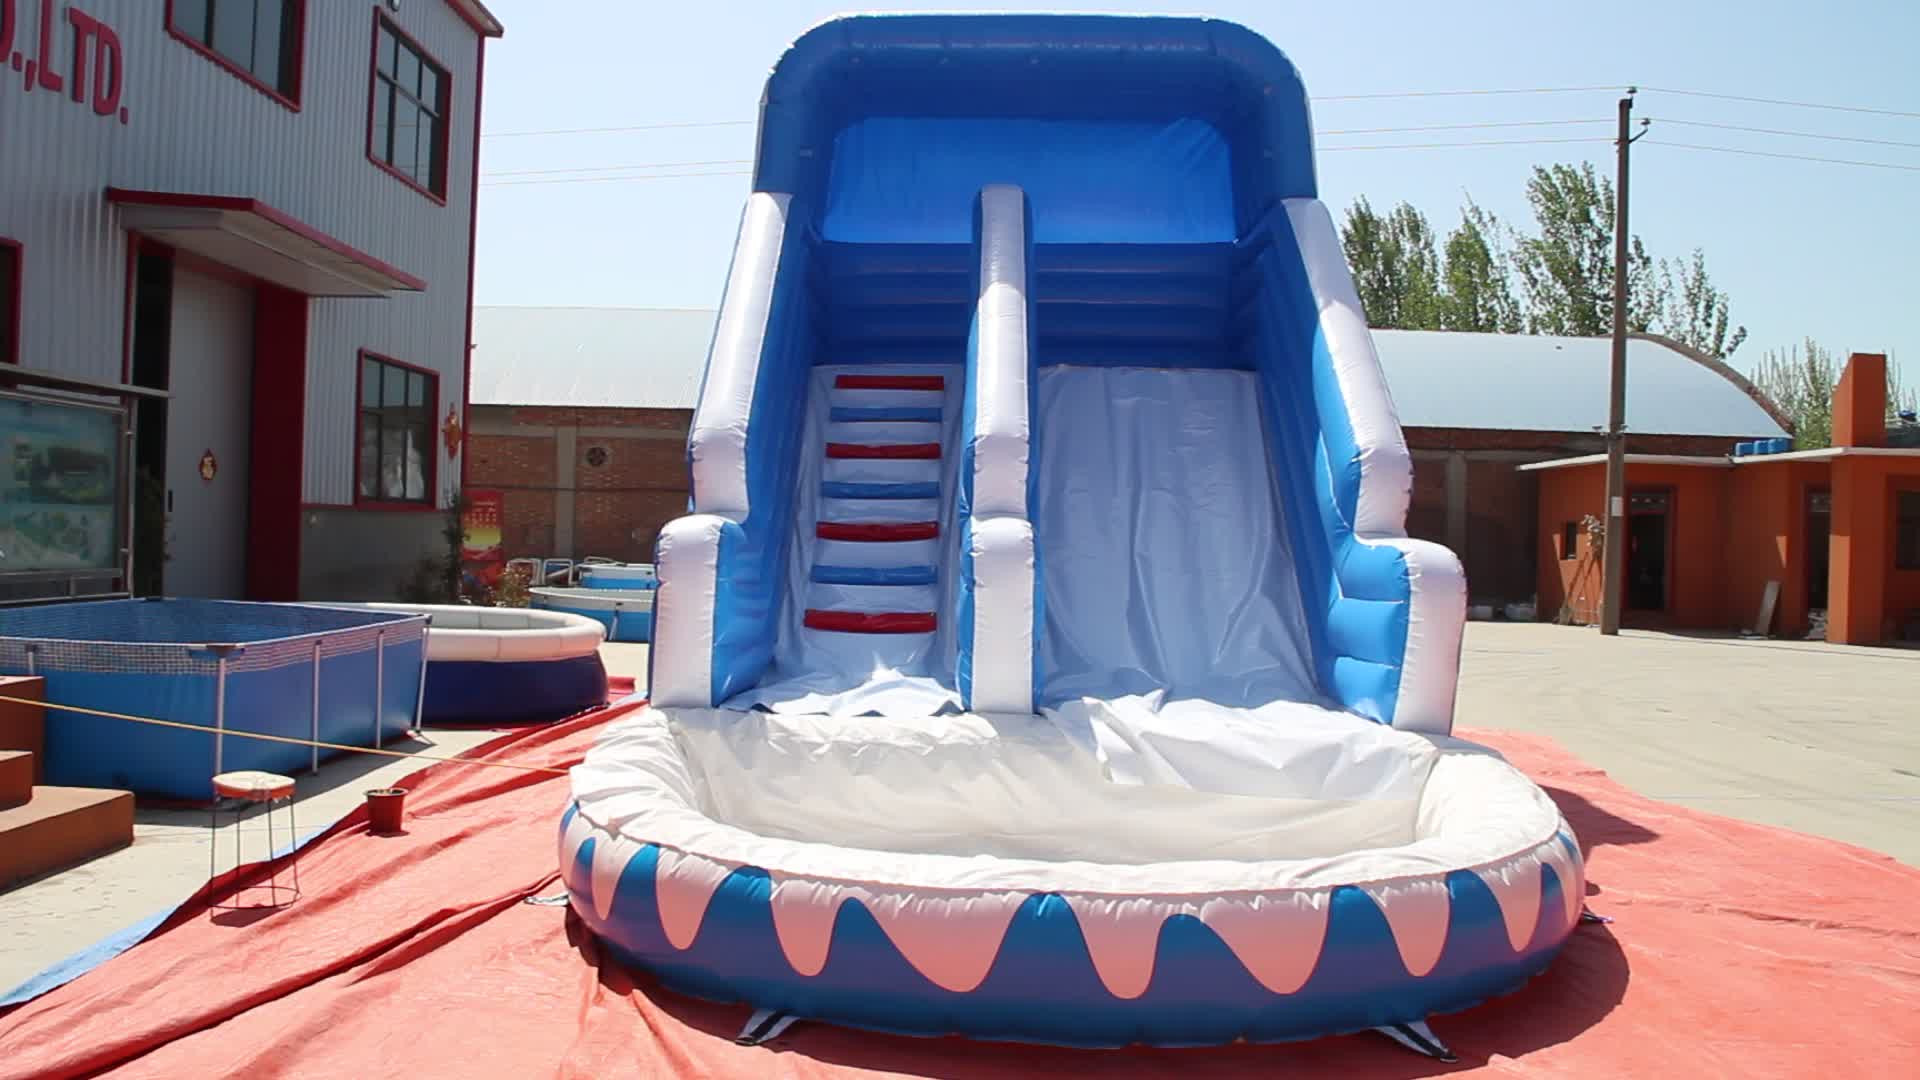 Backyard Water Slides For Sale  mercial Outdoor Big Huge Giant Inflatable Water